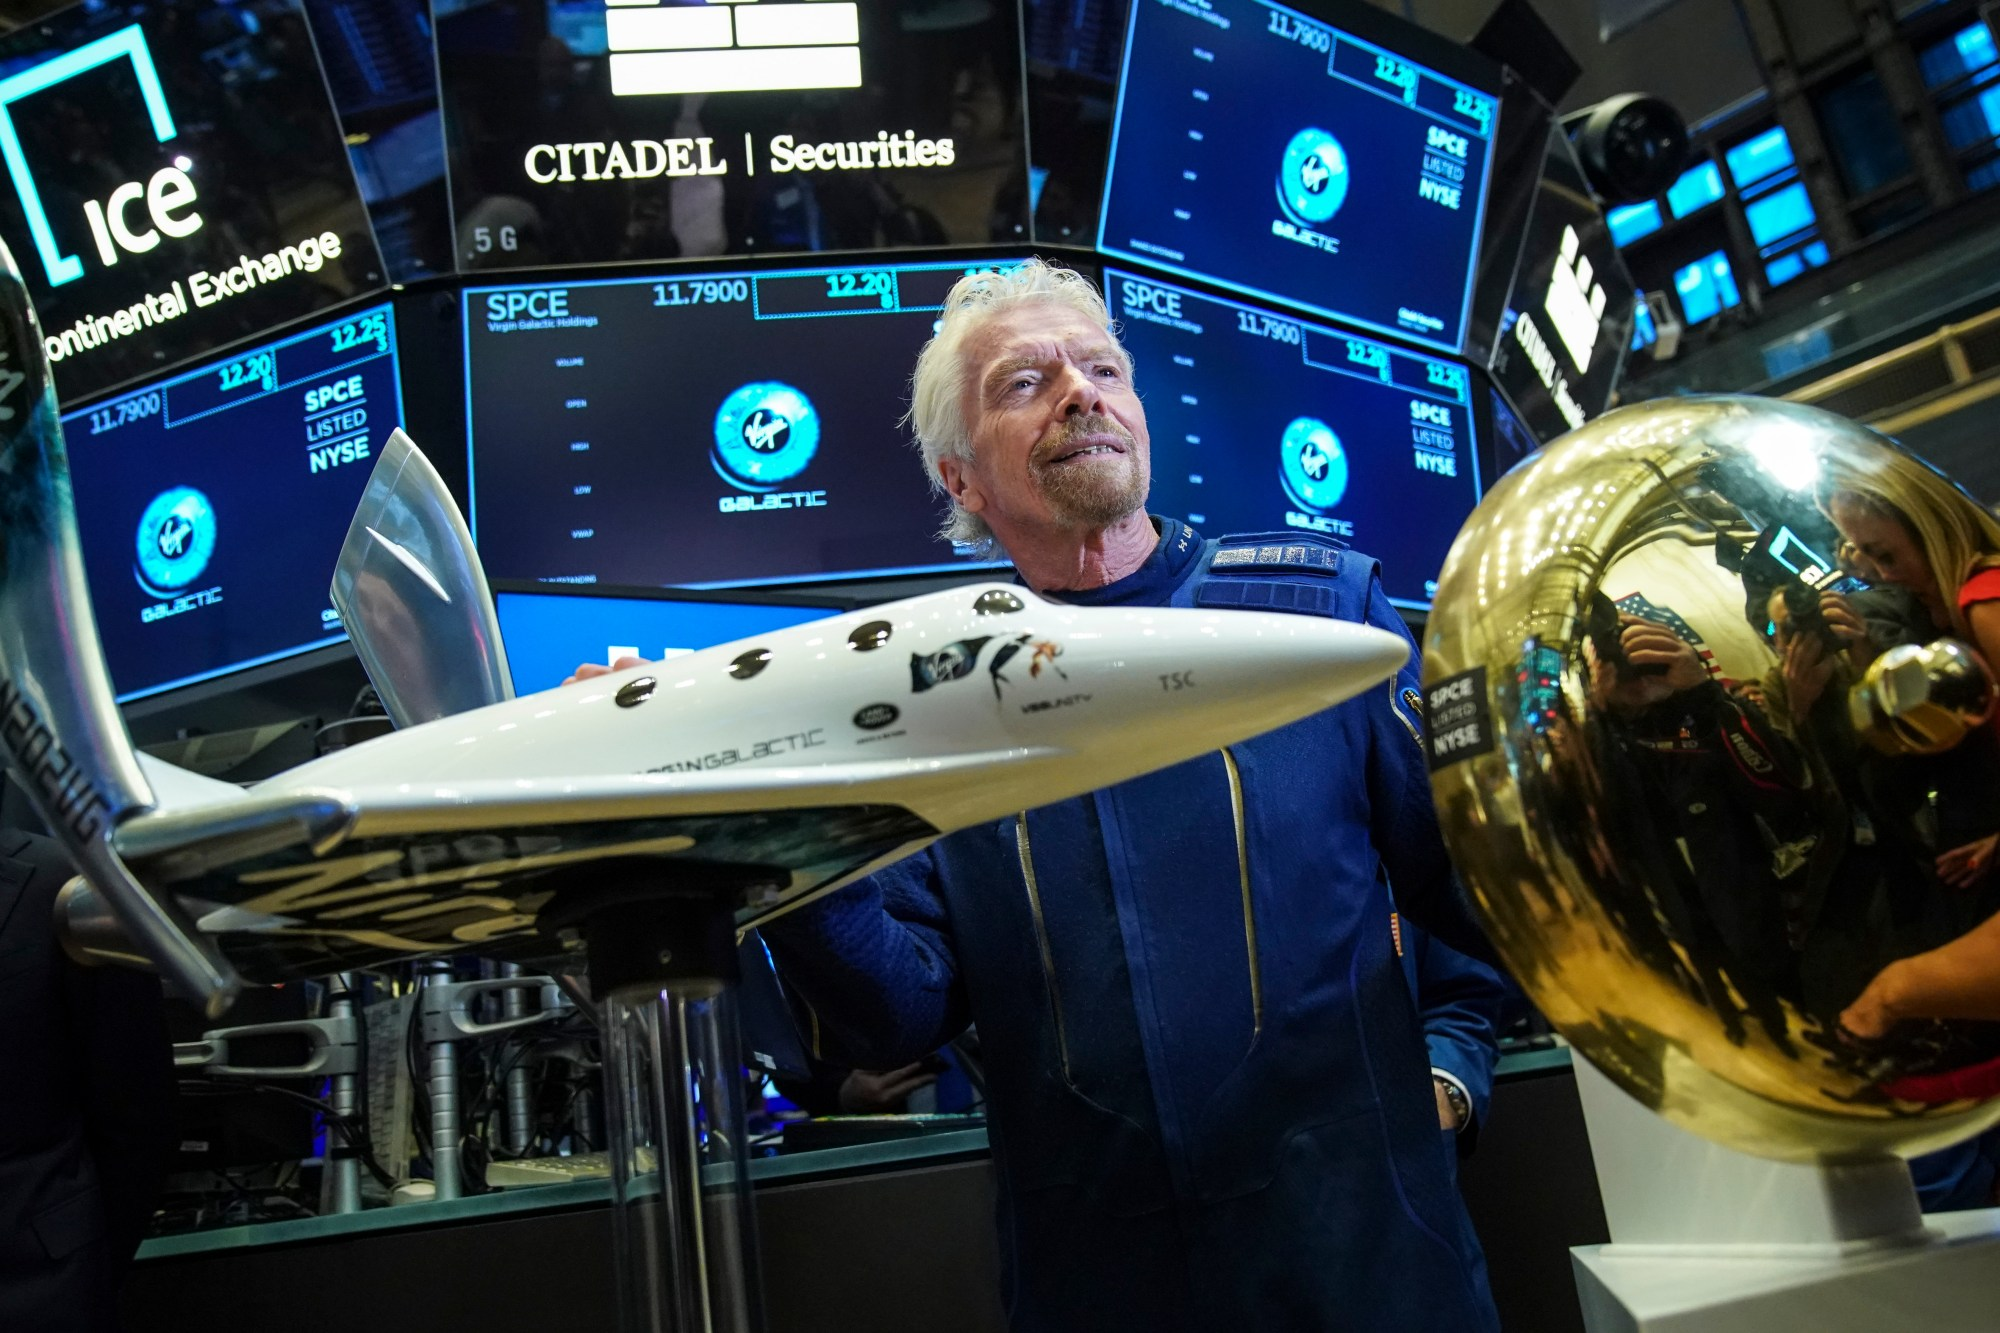 Sir Richard Branson, founder of Virgin Galactic, poses for photographs before ringing a ceremonial bell on the floor of the New York Stock Exchange on the company's first day of trading shares, Oct. 28, 2019. (Credit: Drew Angerer / Getty Images)